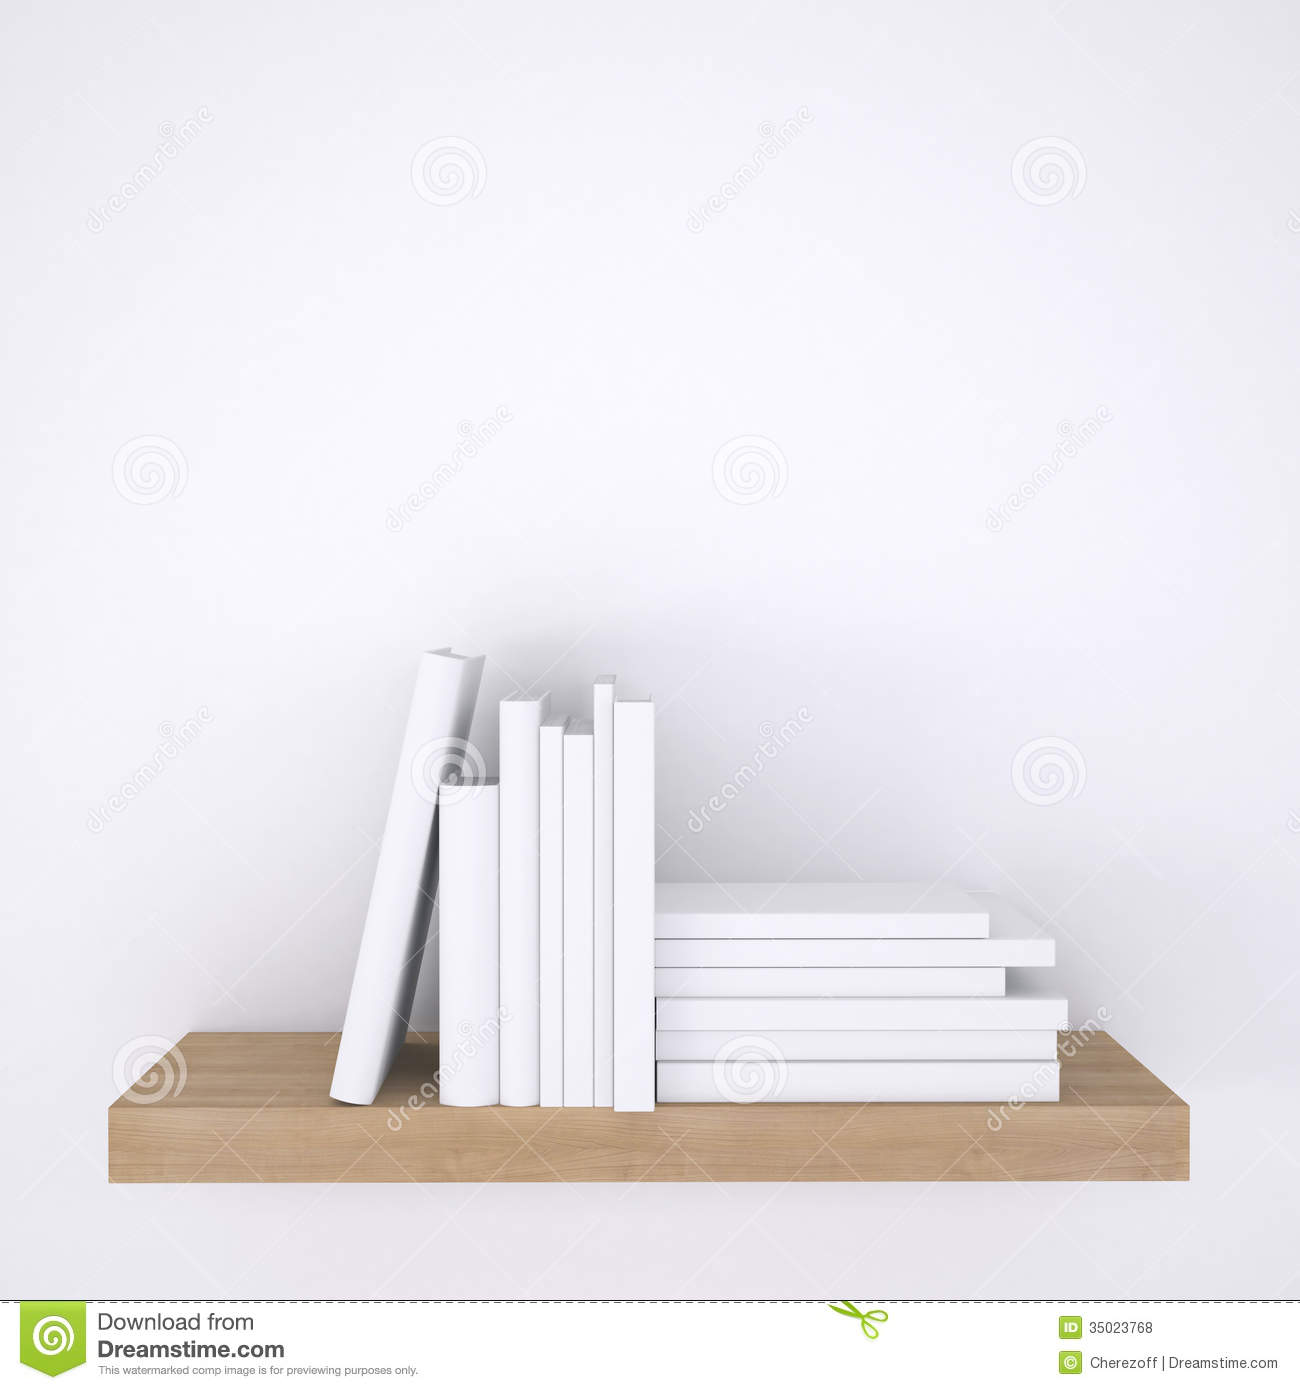 Wooden Shelf With Books White Wall Background Royalty Free Stock s Image